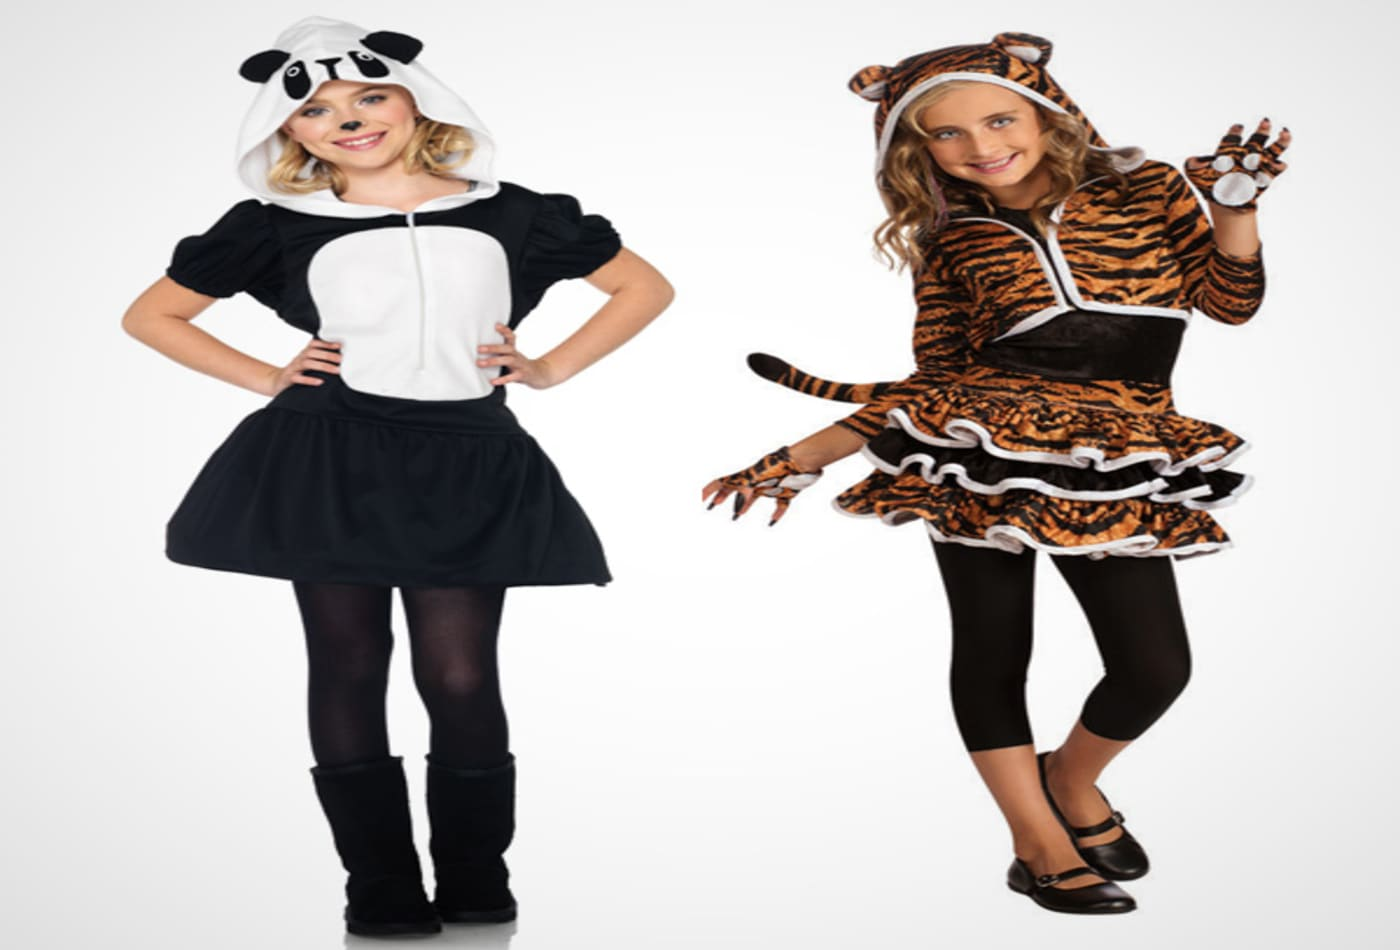 Halloween-costumes-kids-2012-panda-tigress.jpg